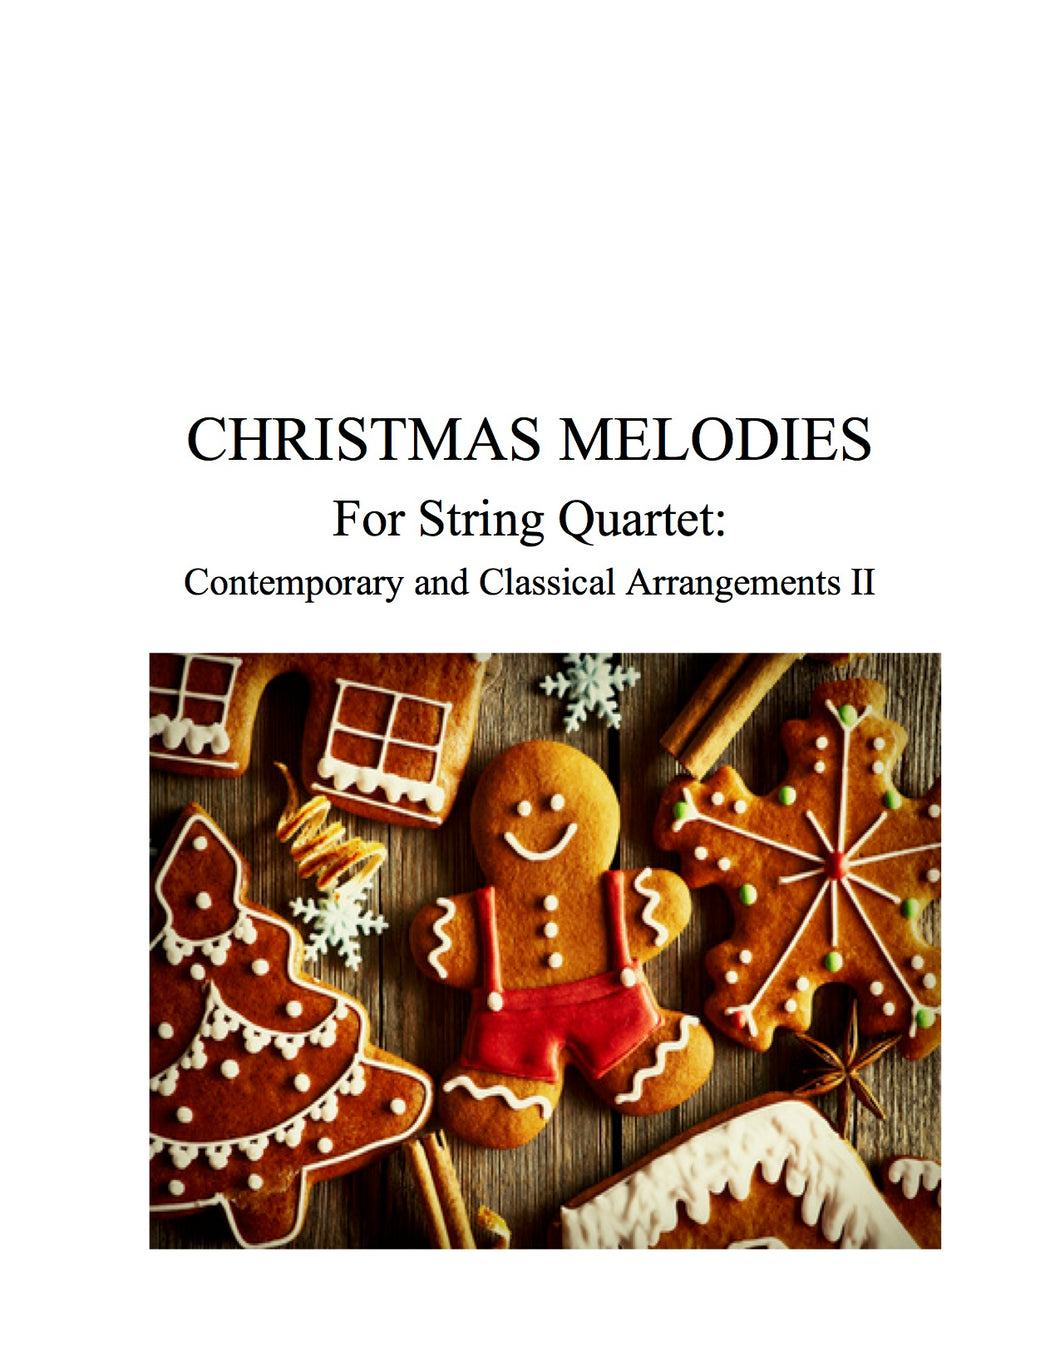 048 - Christmas Melodies For String Quartet, Volume II